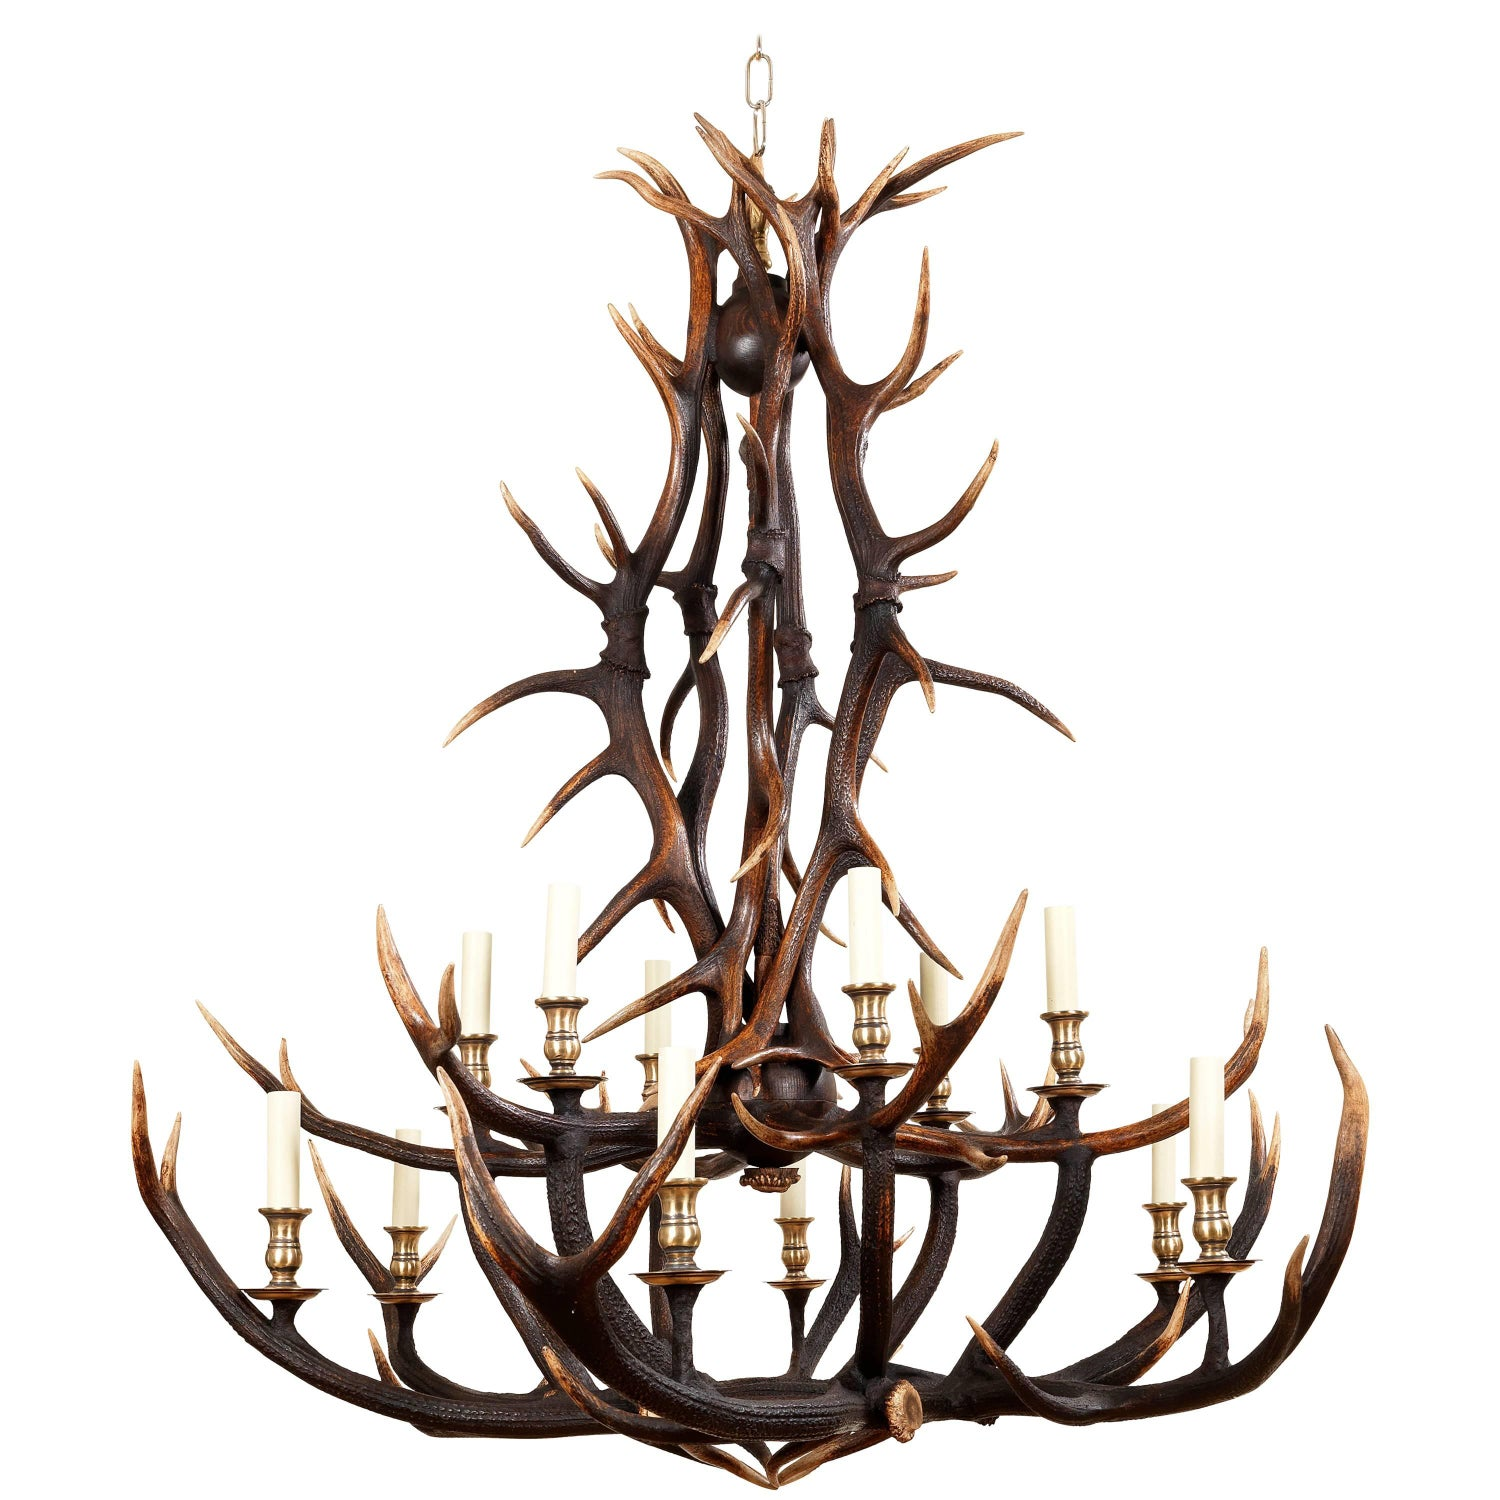 Antler chandeliers and pendants 38 for sale at 1stdibs anthony redmile scottish red deer antler or stag horn chandelier mozeypictures Image collections